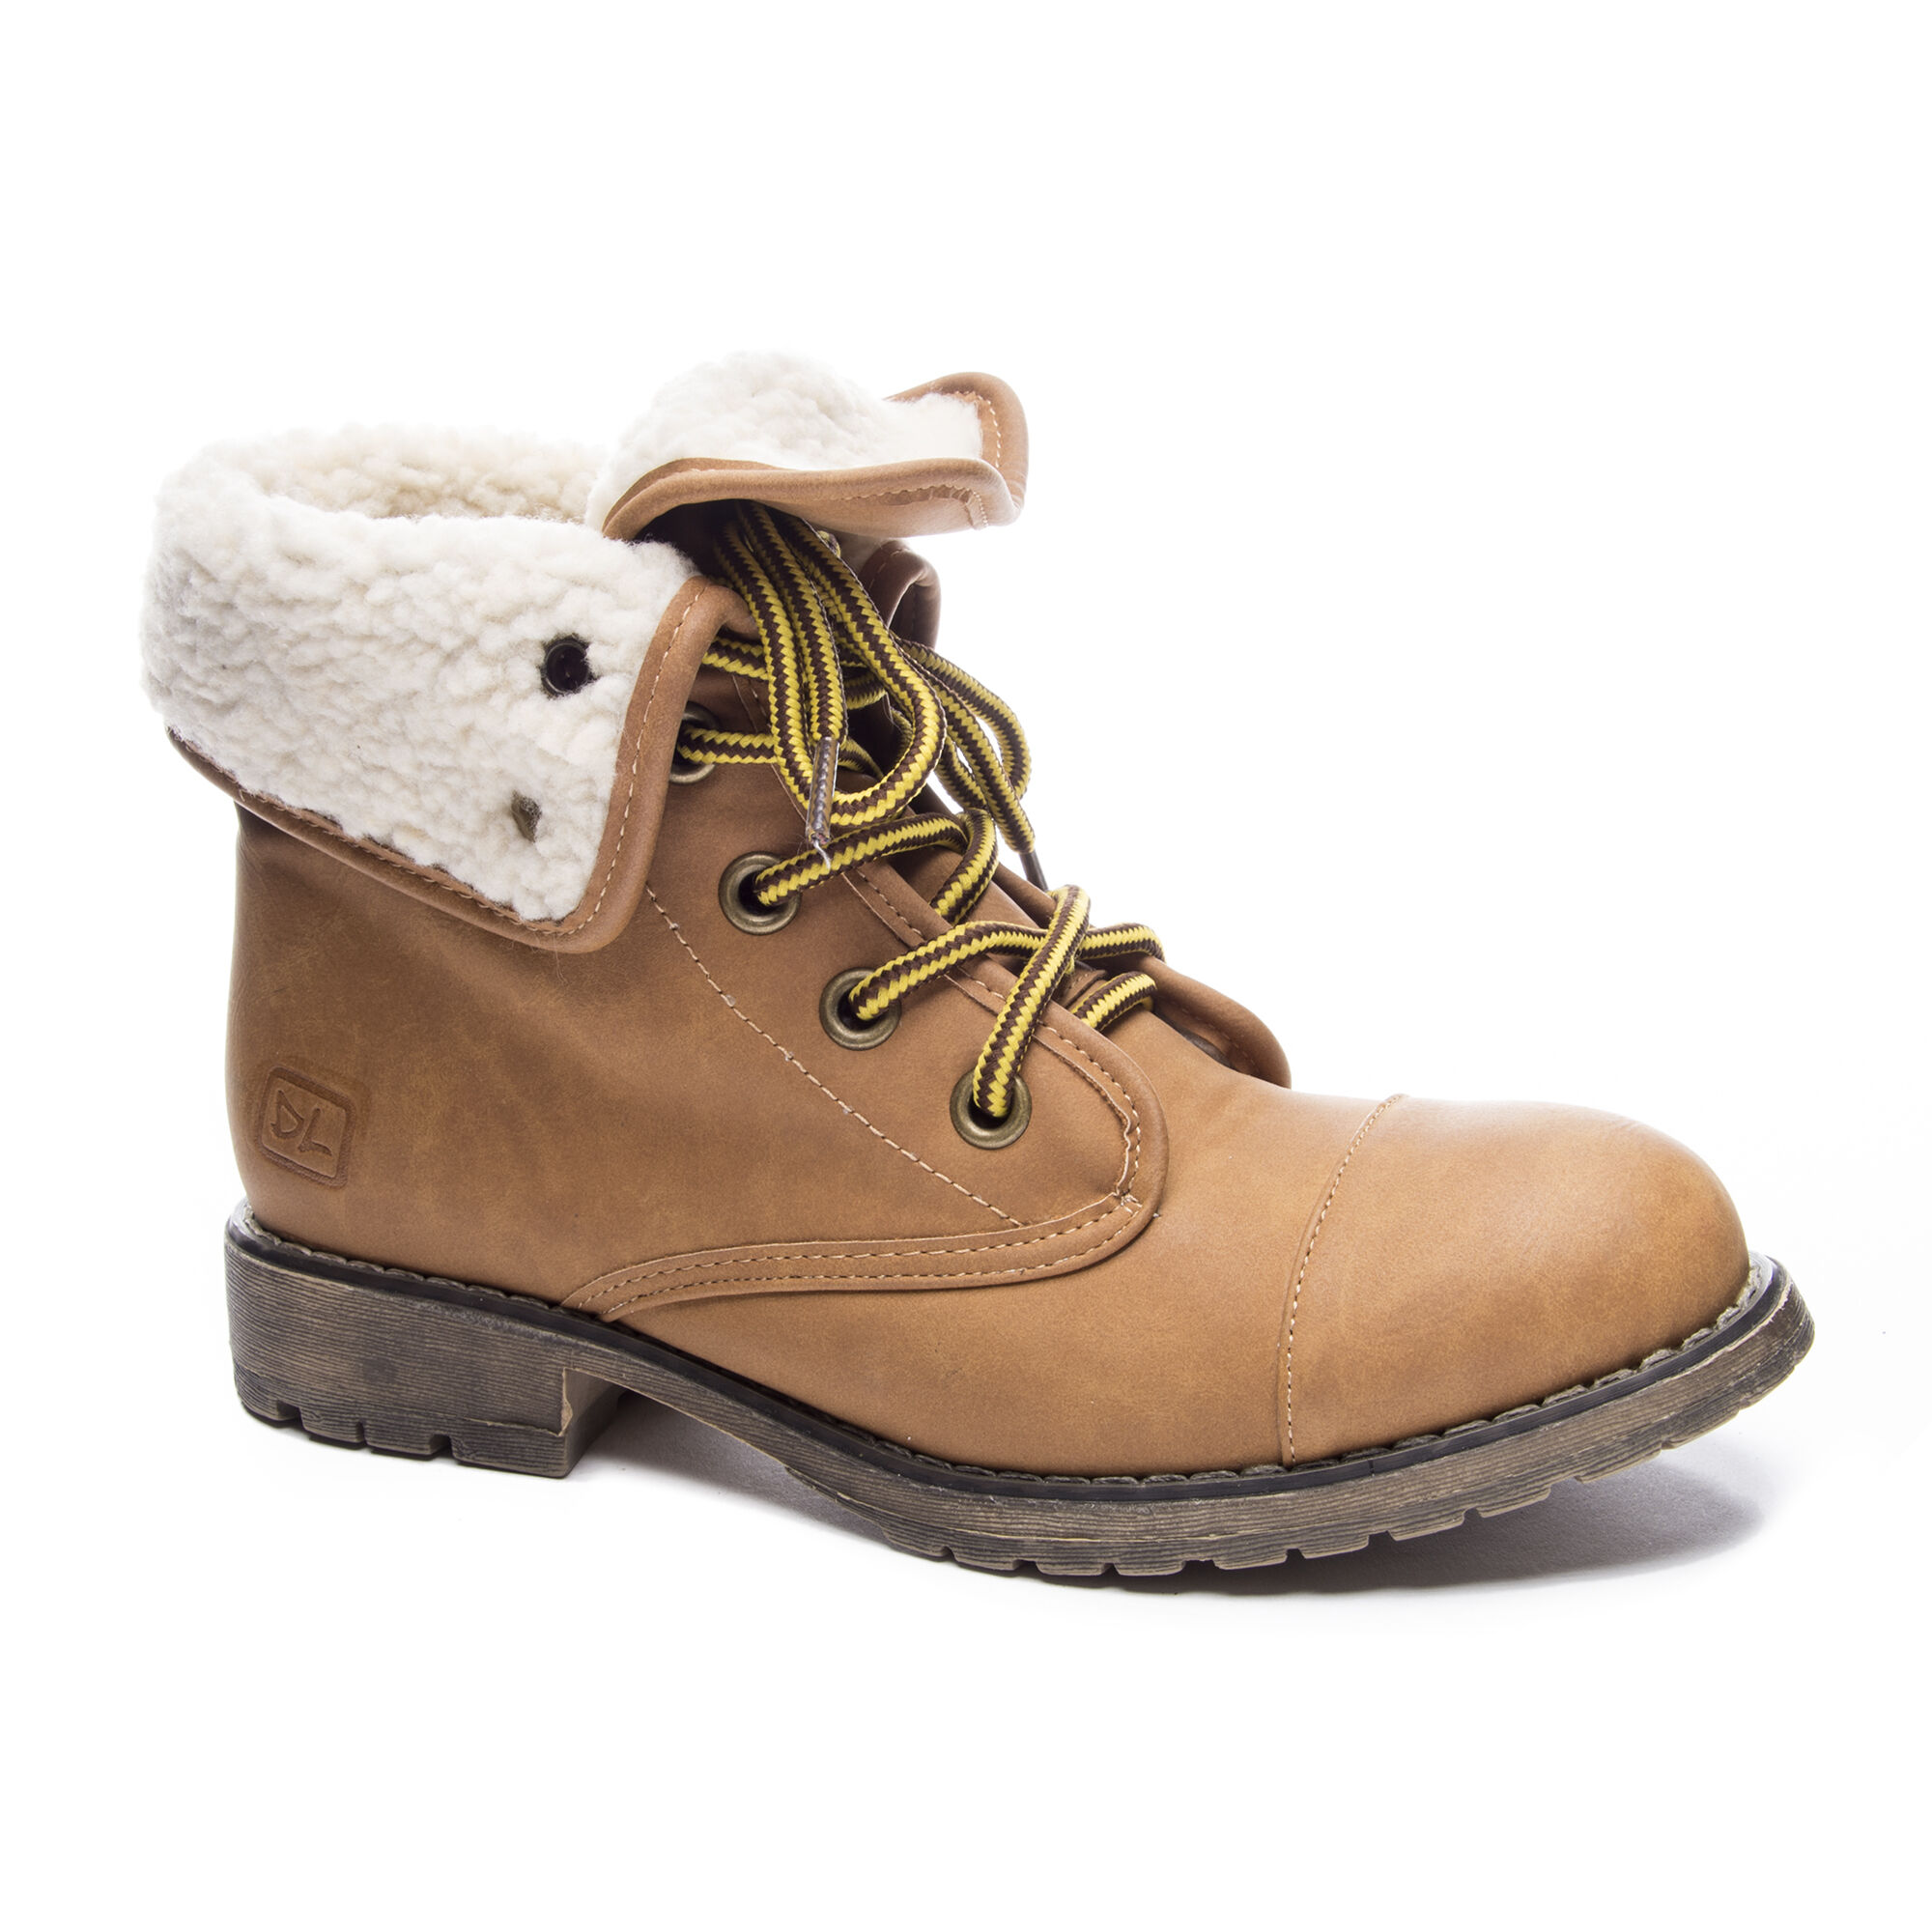 Dirty Laundry Raeven Faux Shearling Lined Boot